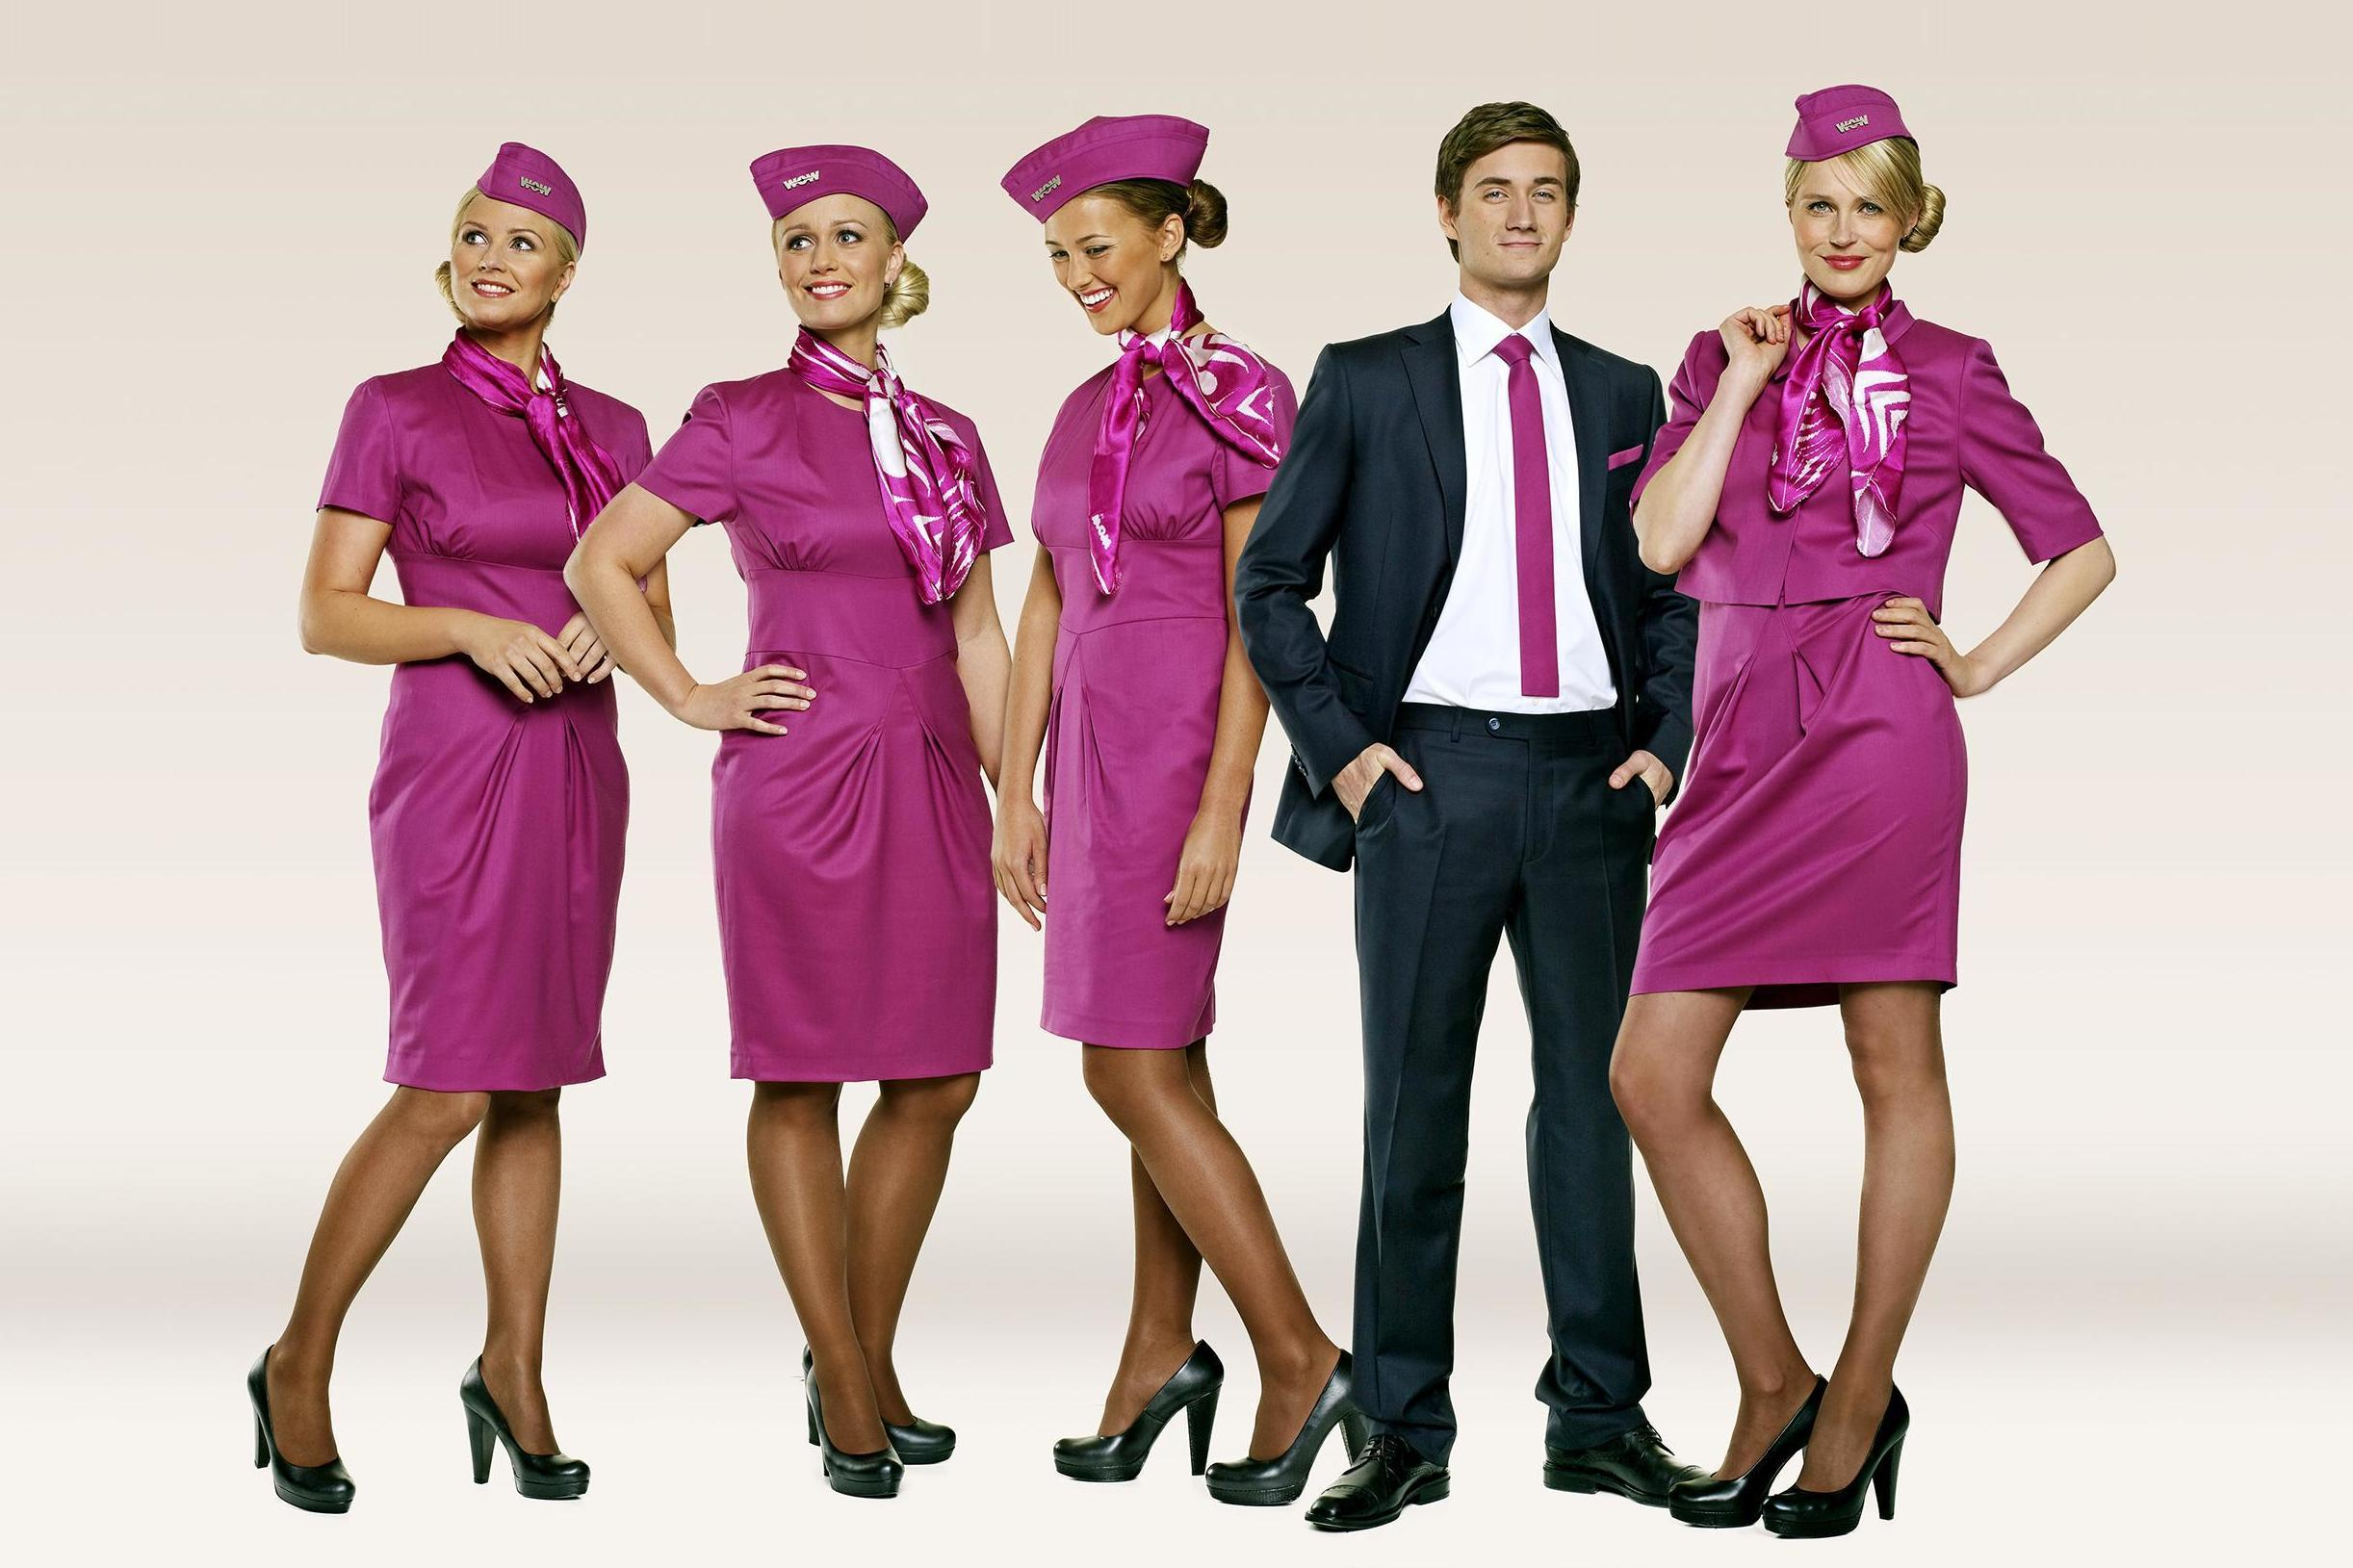 Airline hostess uniforms